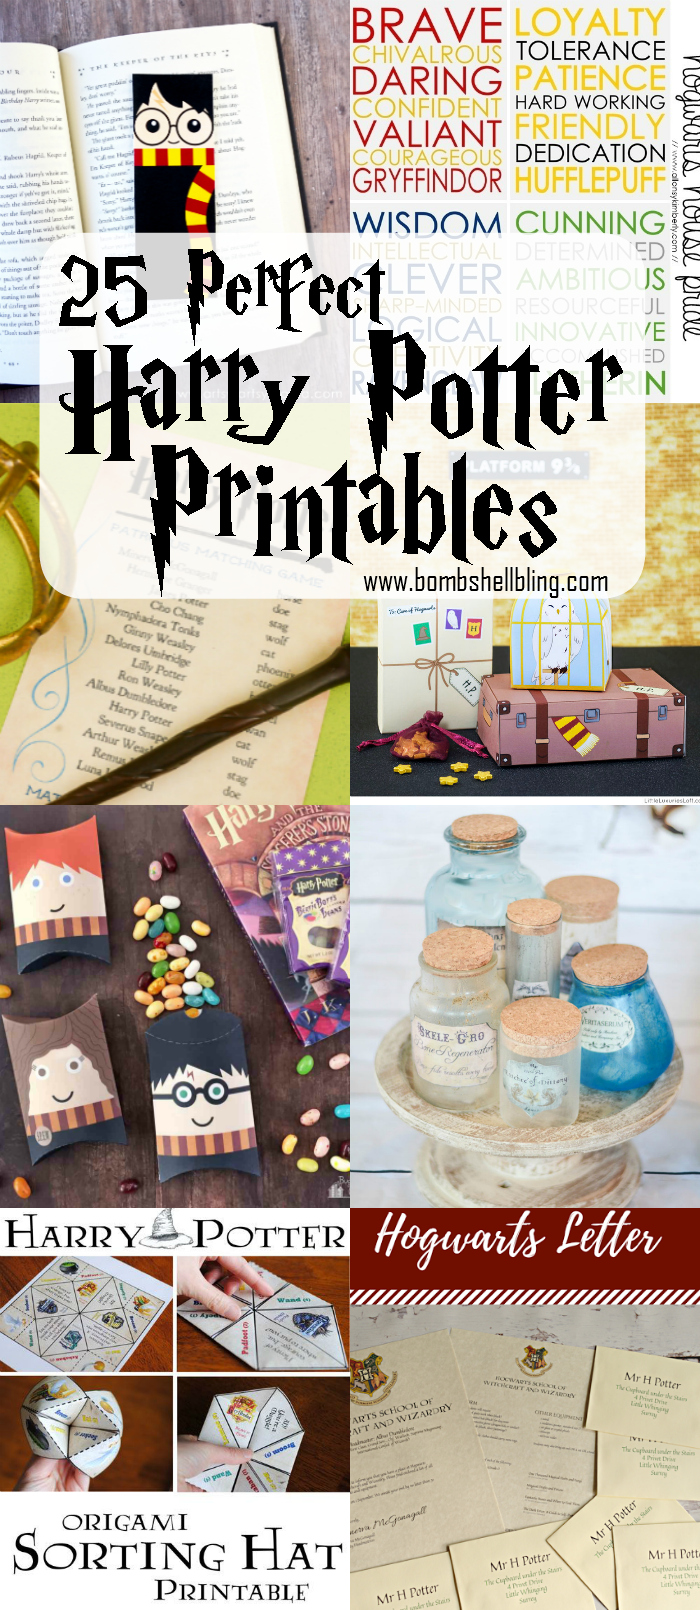 These 25 perfect Harry Potter printables are perfect for the Potter fanatic! From bookmarks to games to decor to party supplies, this collection has it all!